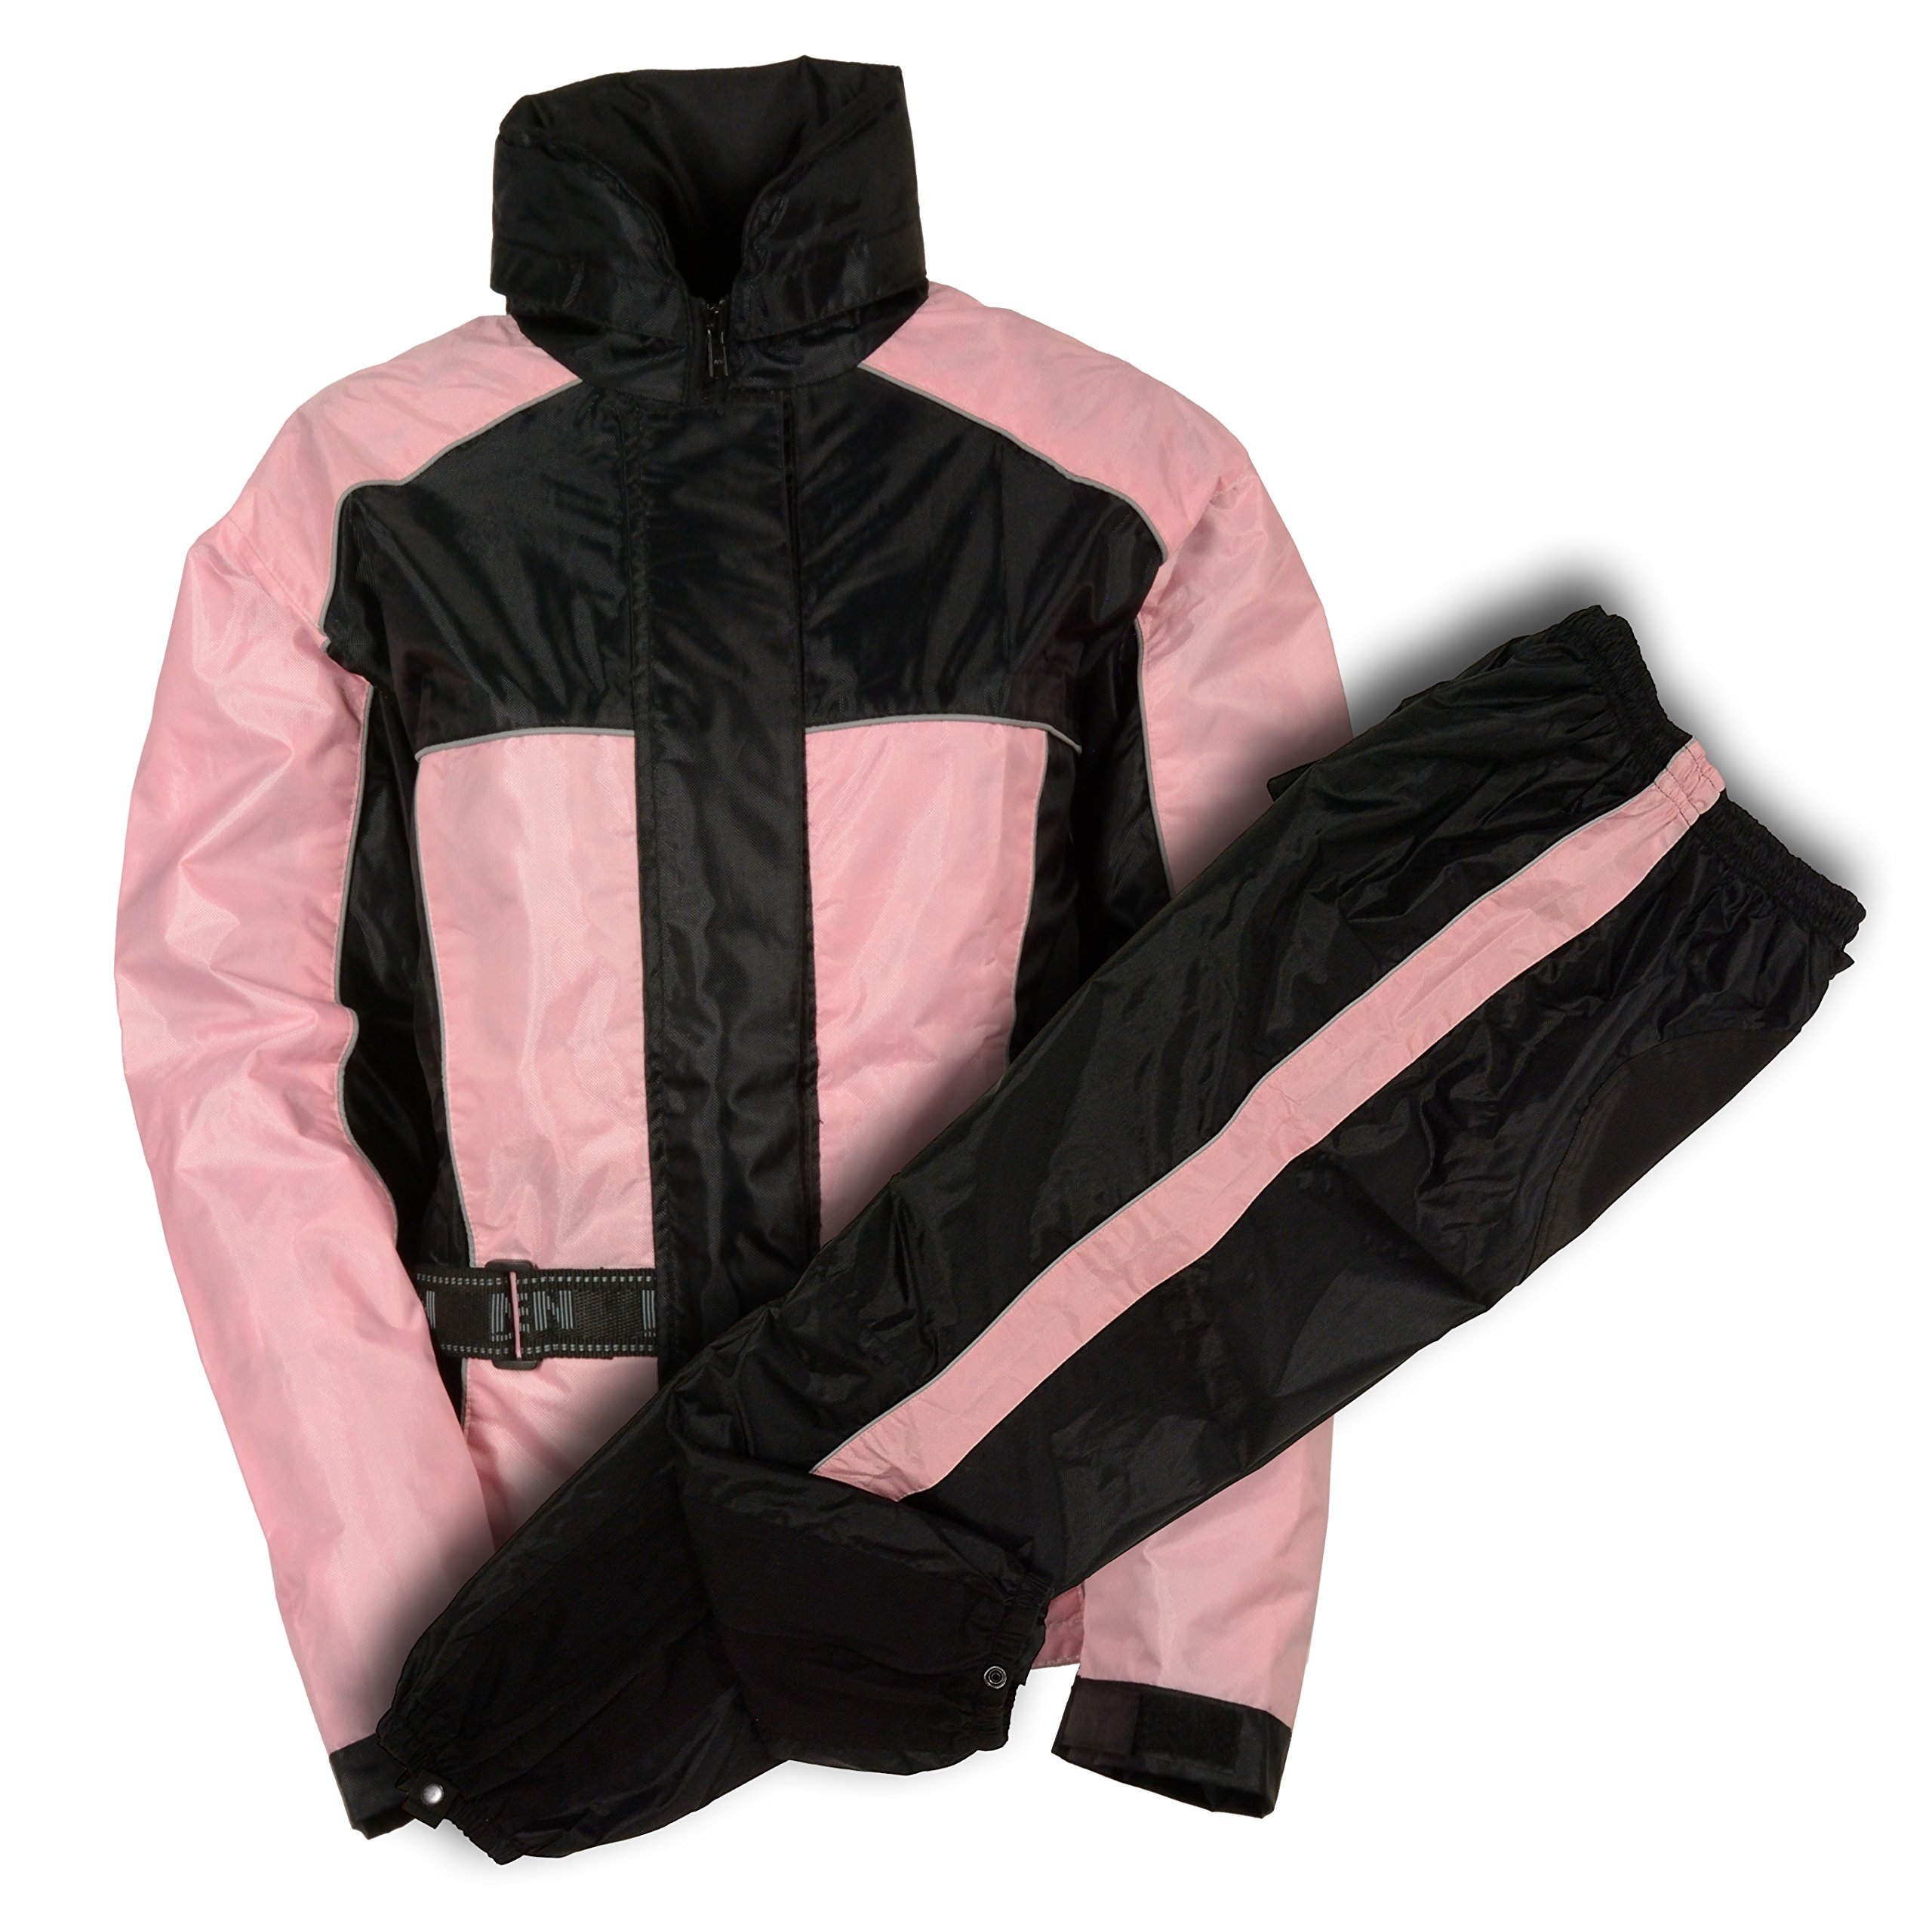 Nexgen Women's Rain Suit (Black/Pink, Medium)